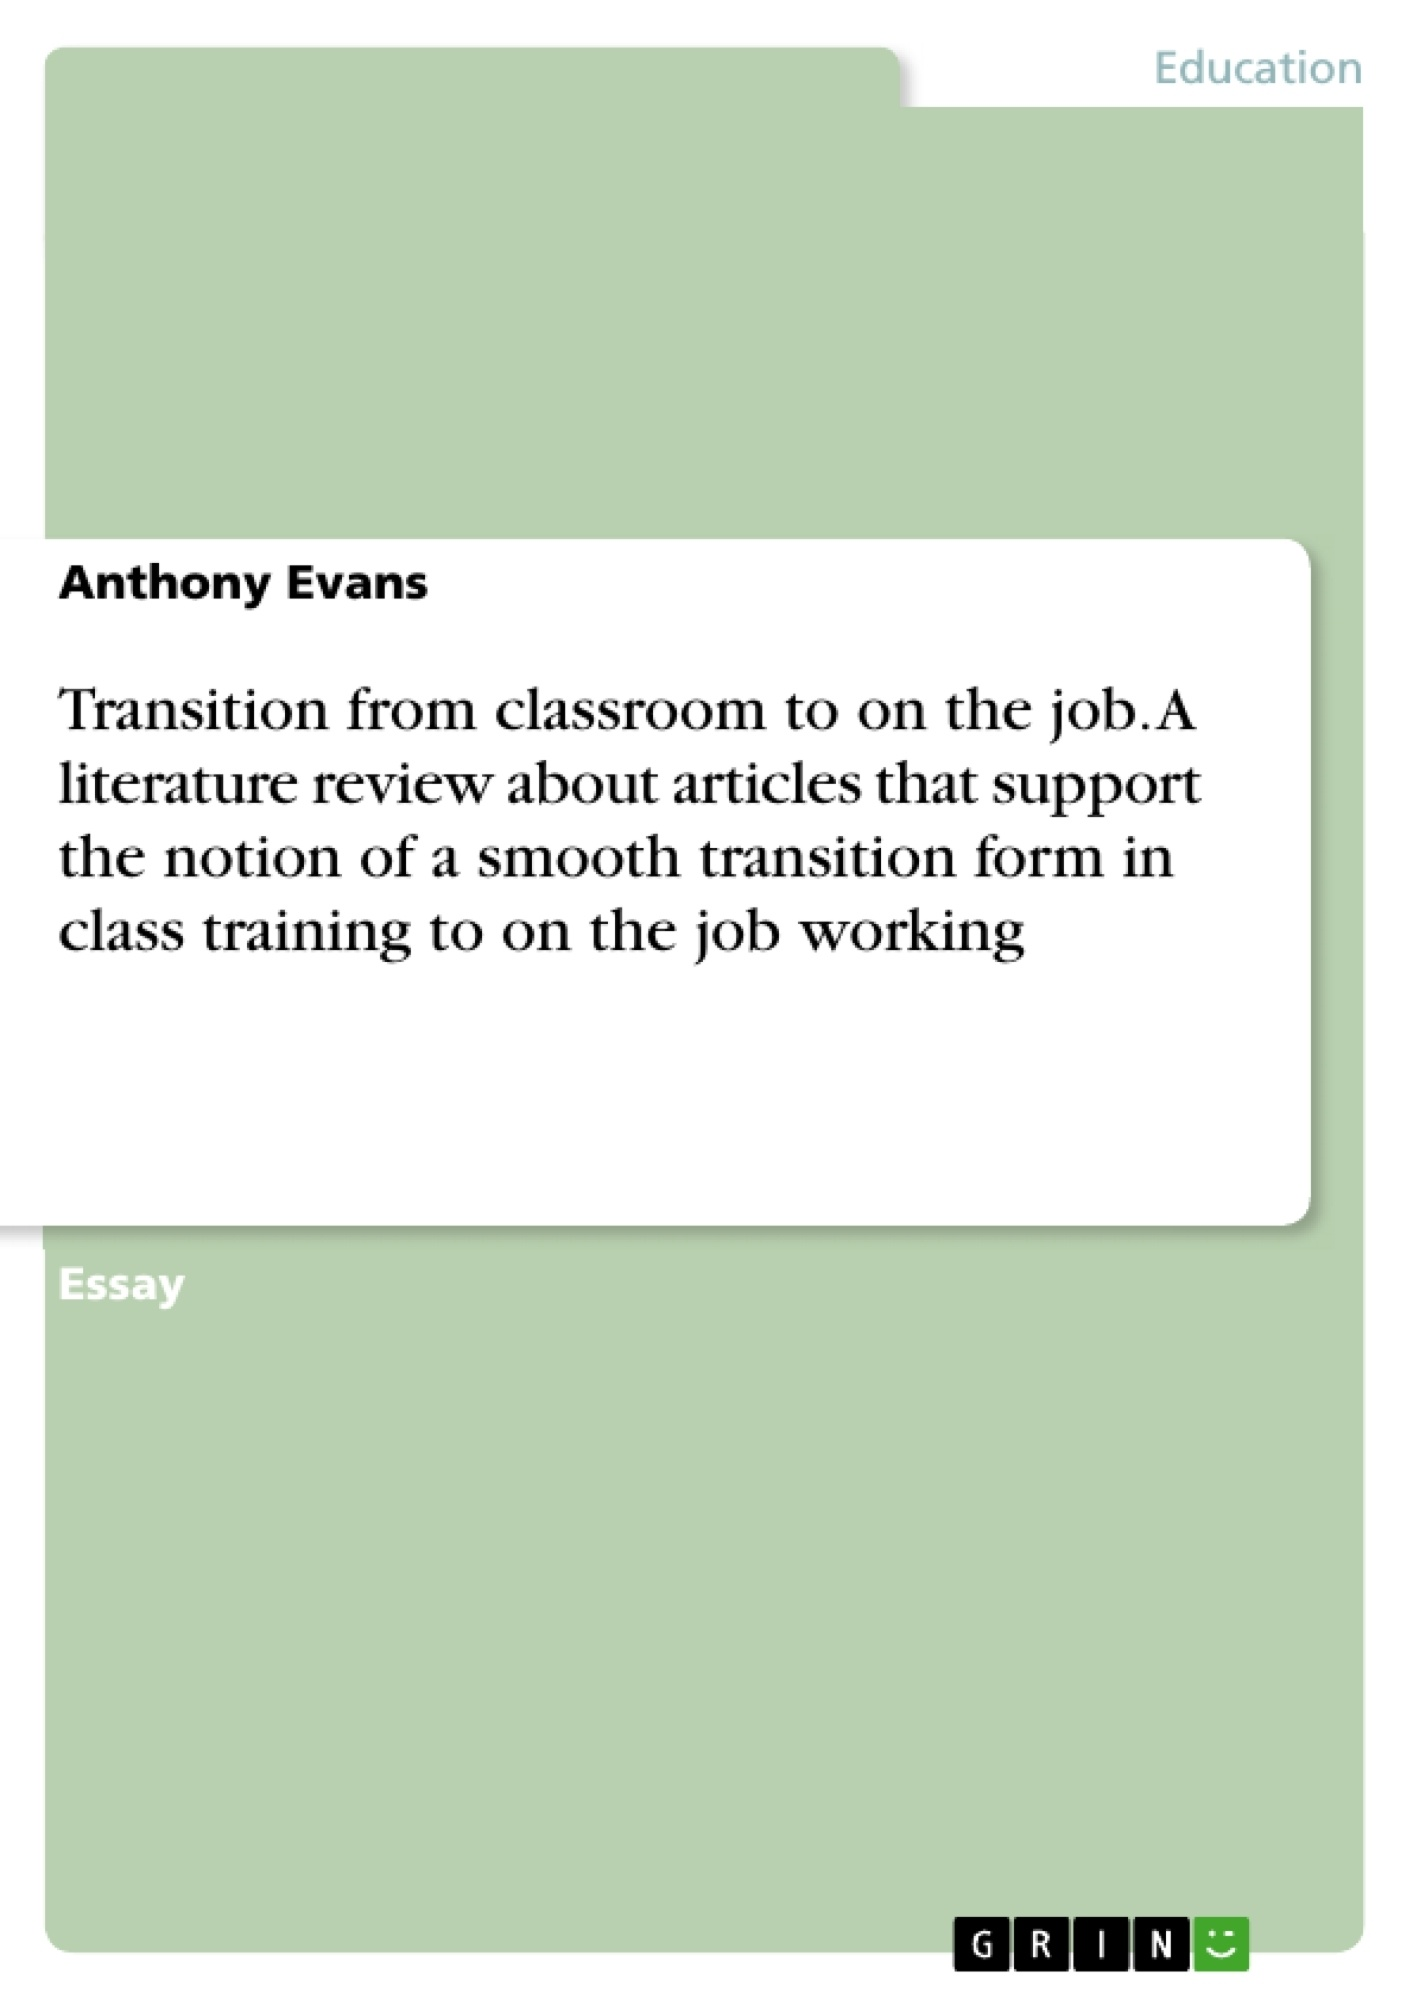 Title: Transition from classroom to on the job. A literature review about articles that support the notion of a smooth transition form in class training to on the job working